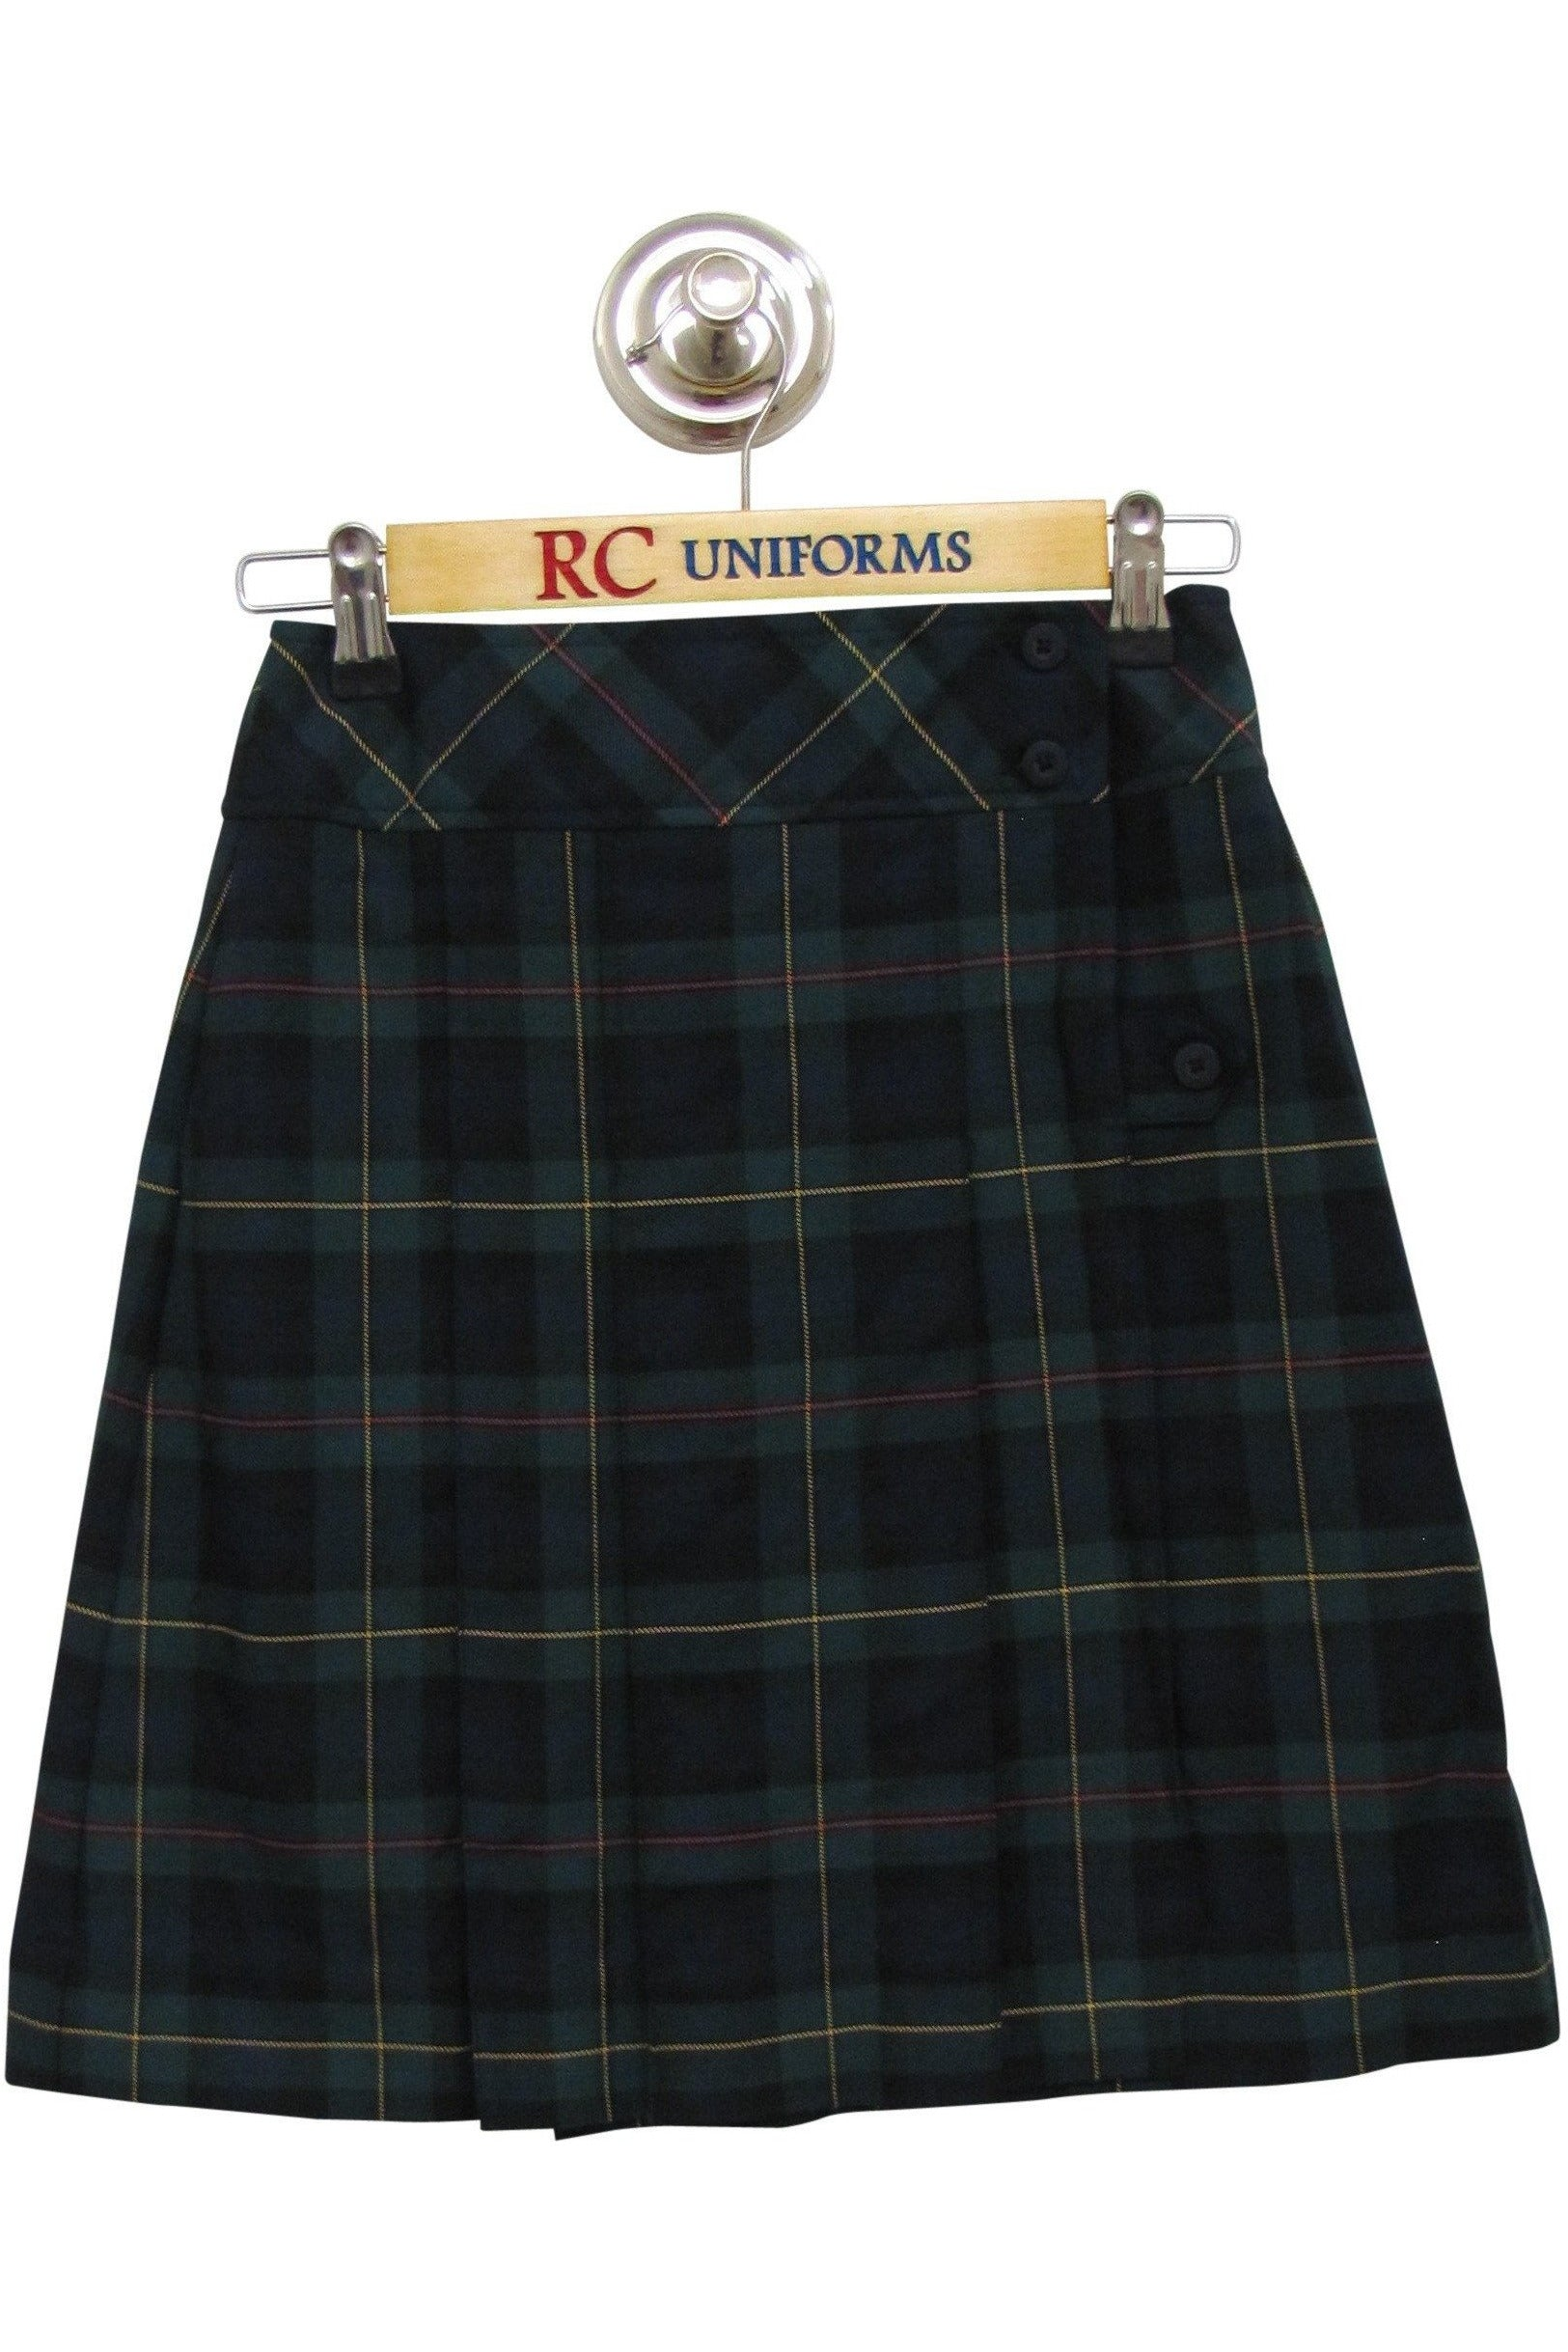 Plaid 832 Mock Wrap Skirt - RC Uniforms